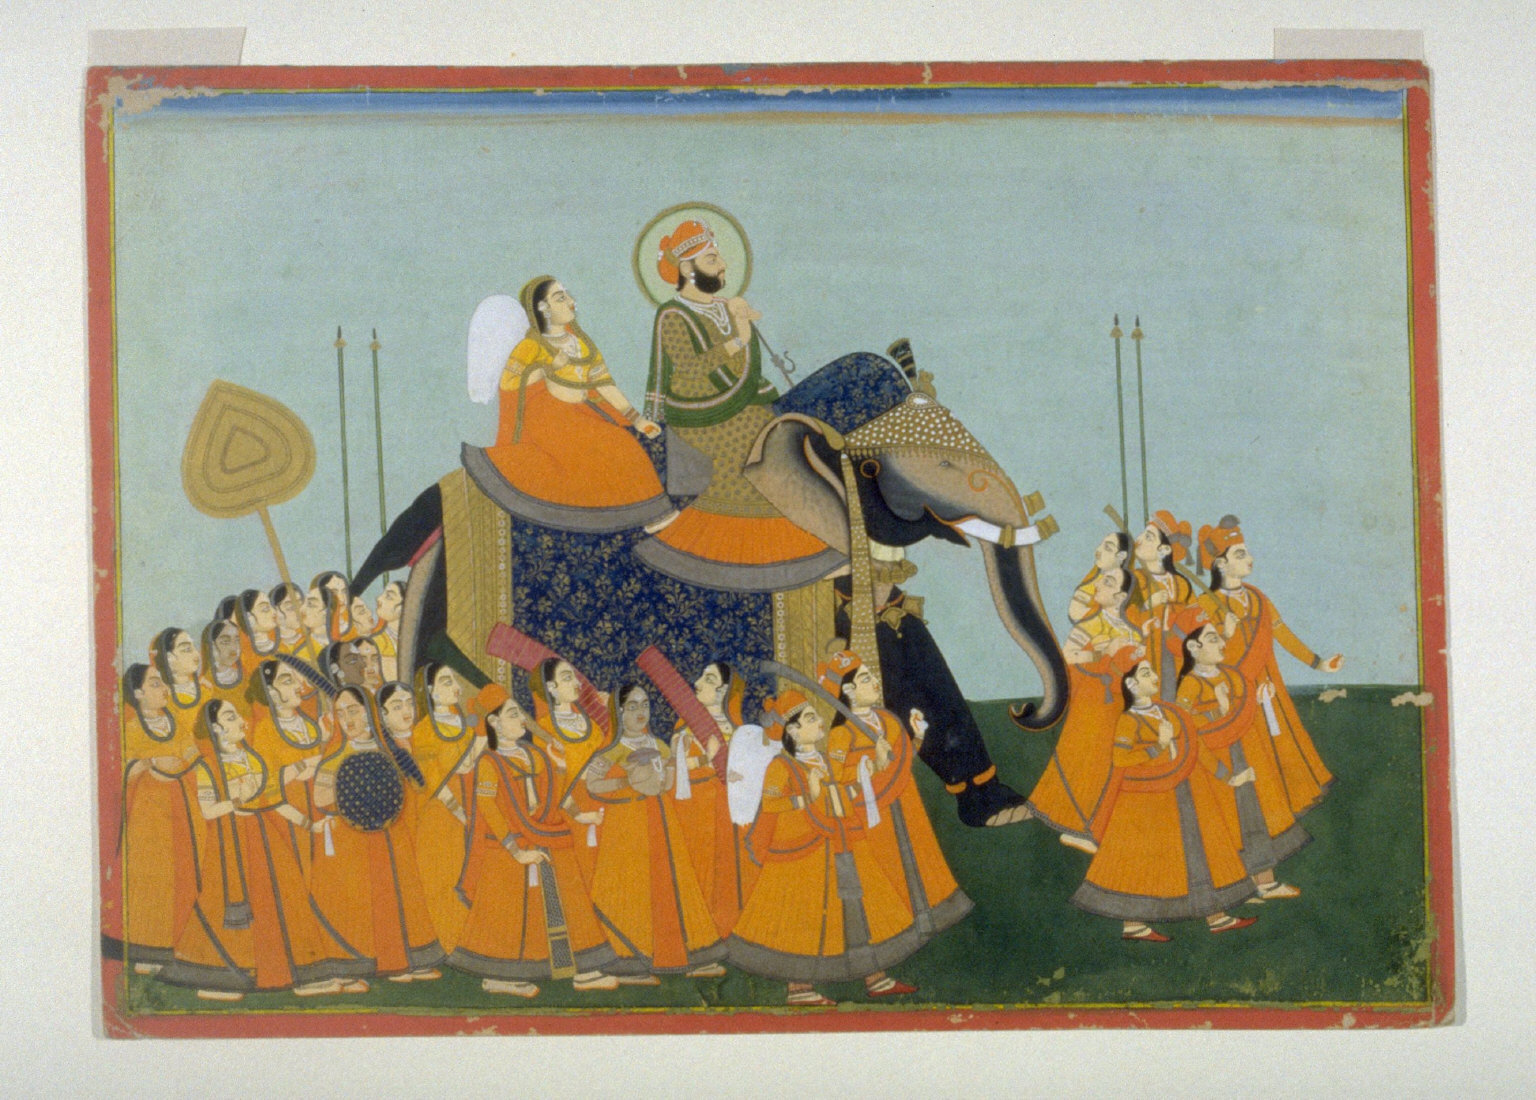 Maharaja Sawai Jagat Singh of Jaipur Riding an Elephant in Procession with Attendants